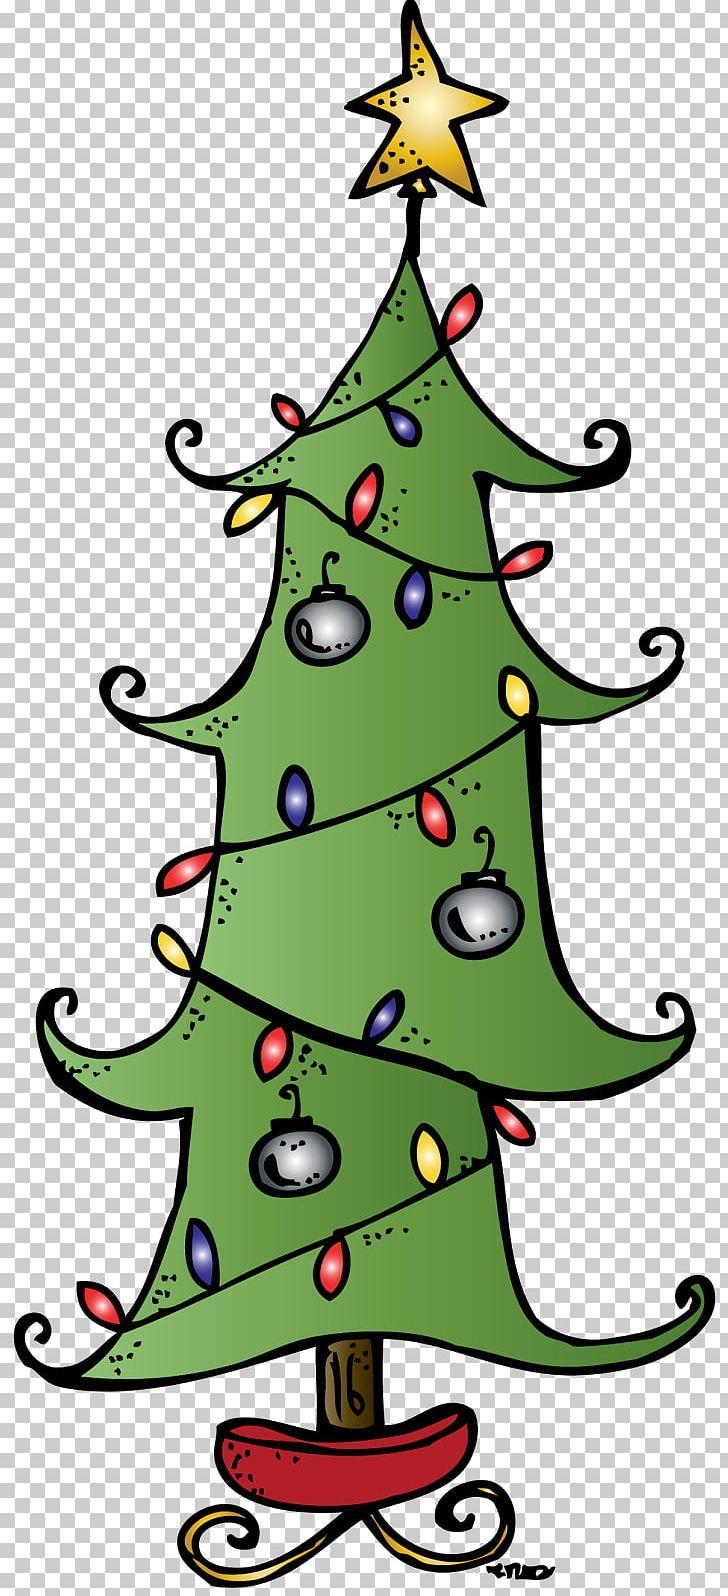 Child Christmas Poetry.Christmas Tree Poetry Child Png Clipart Artificial